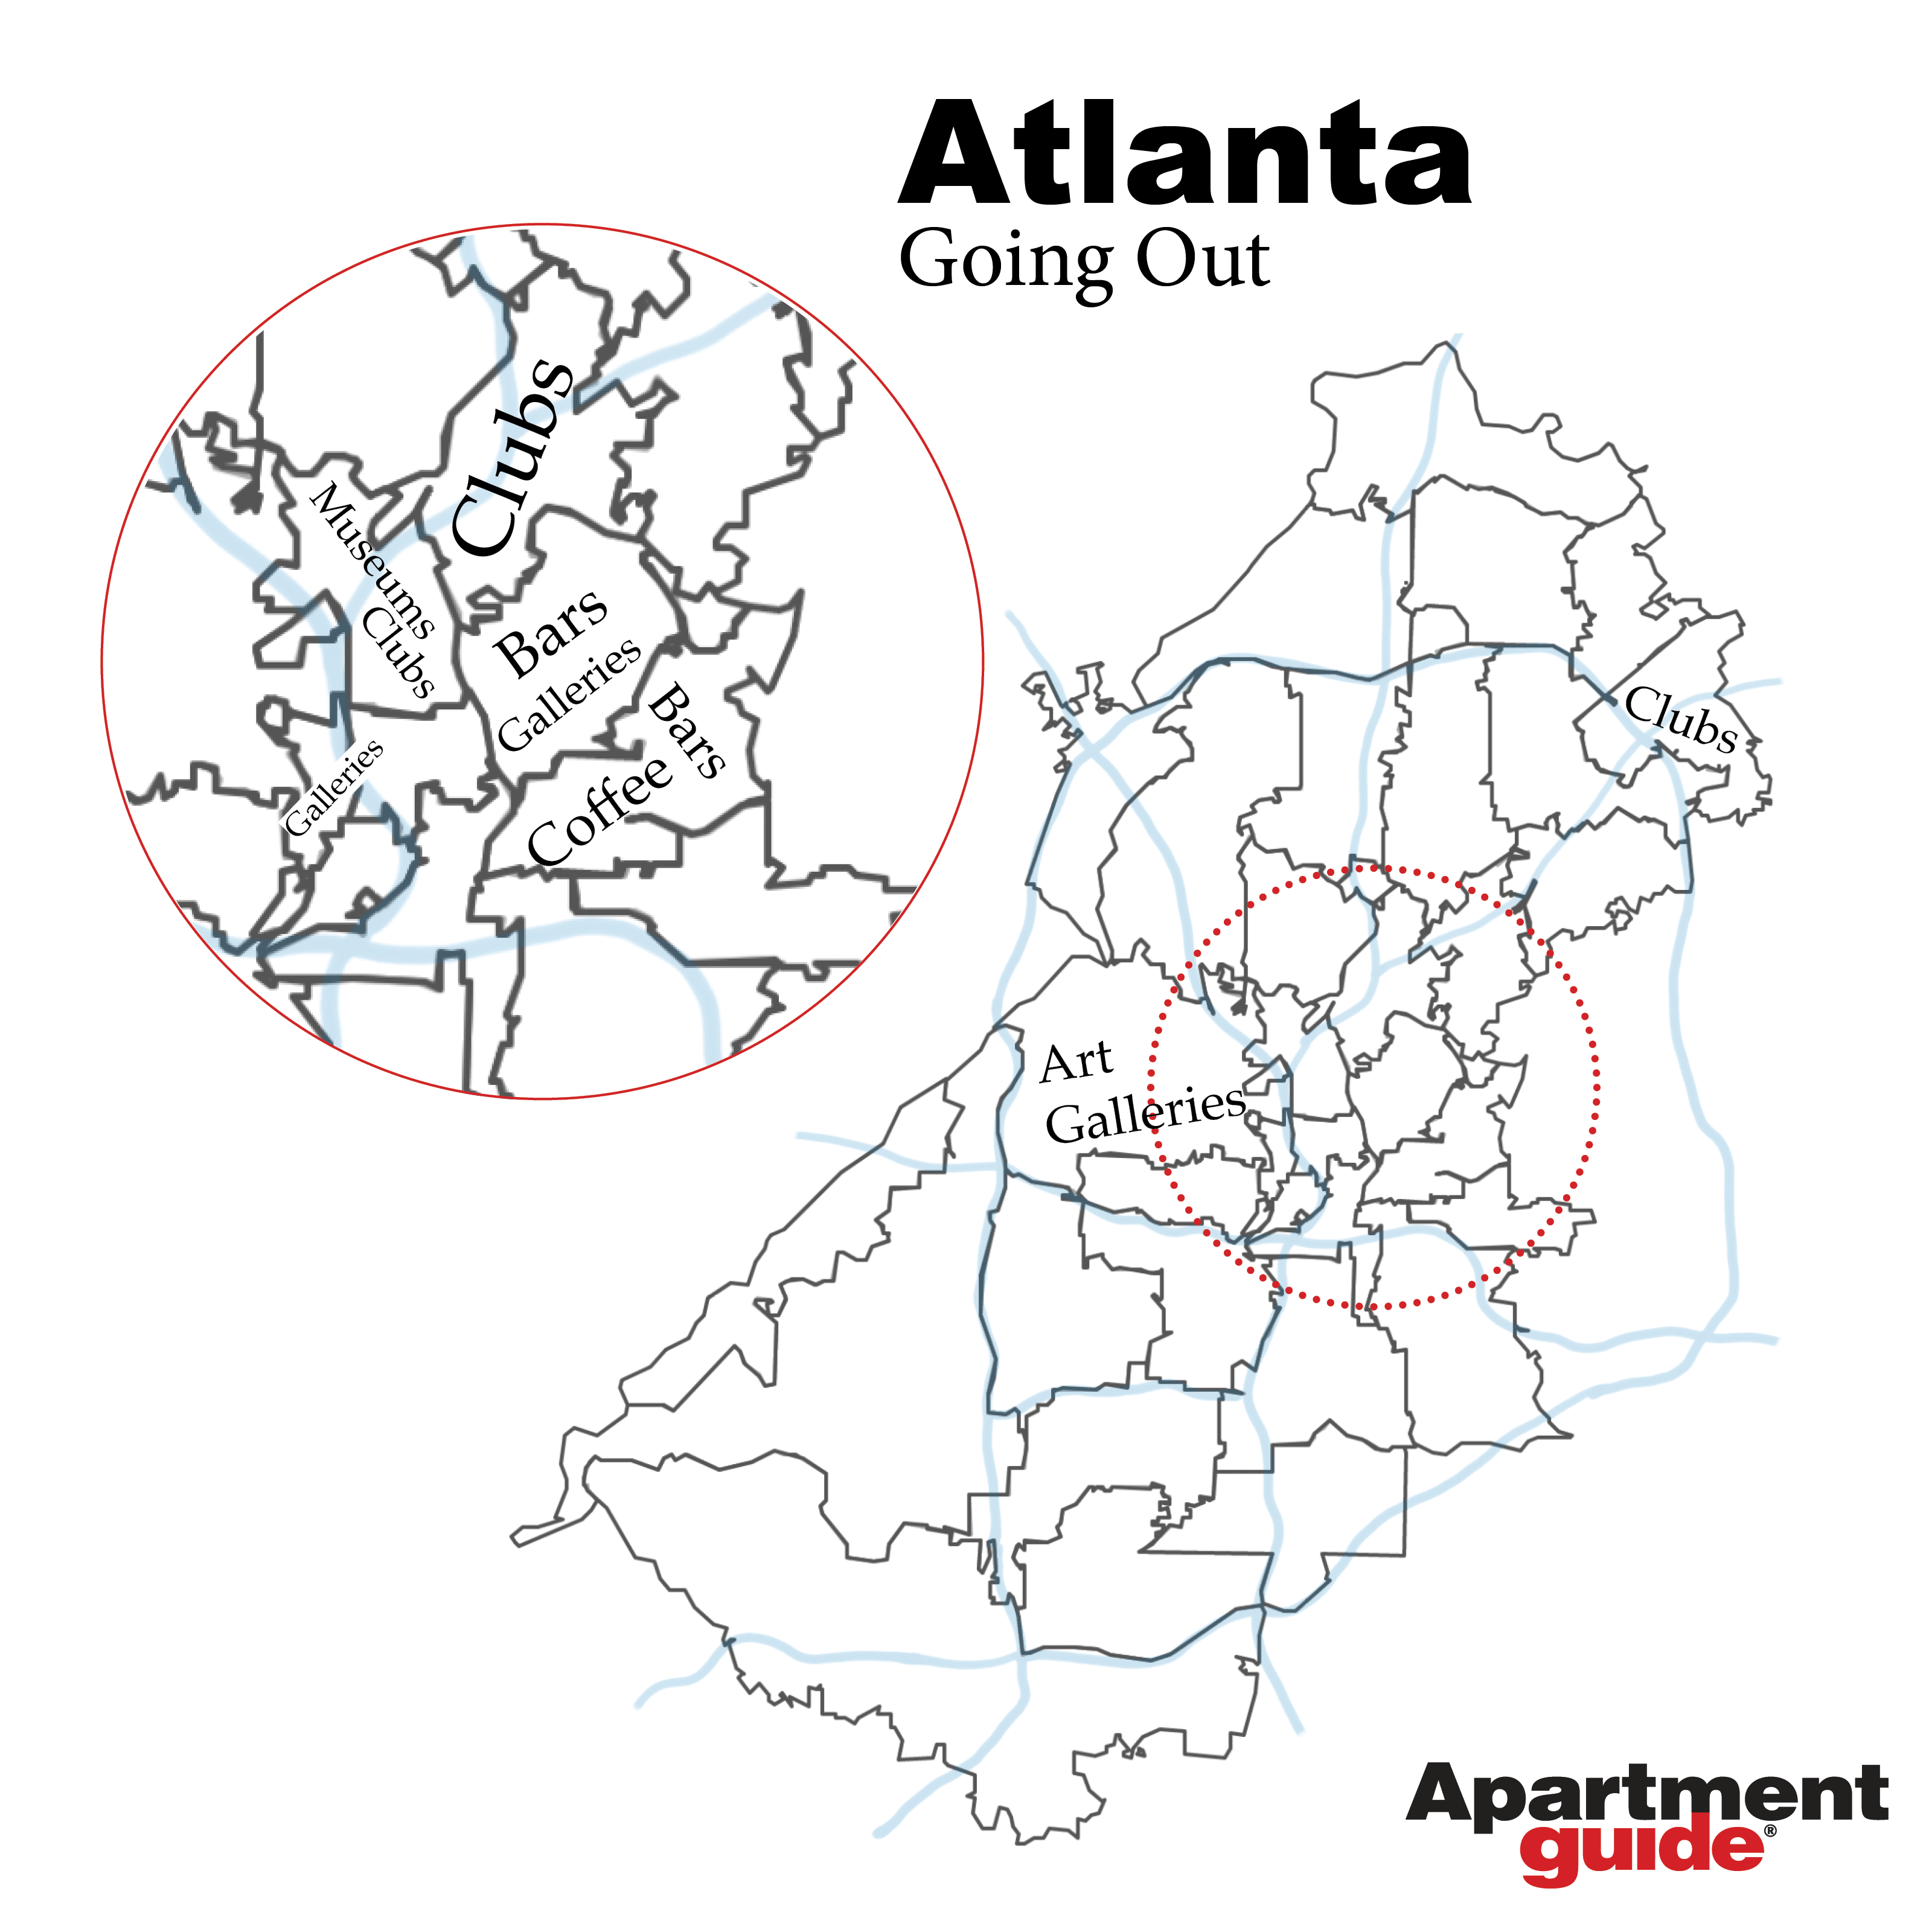 map of most popular social businesses in atlanta